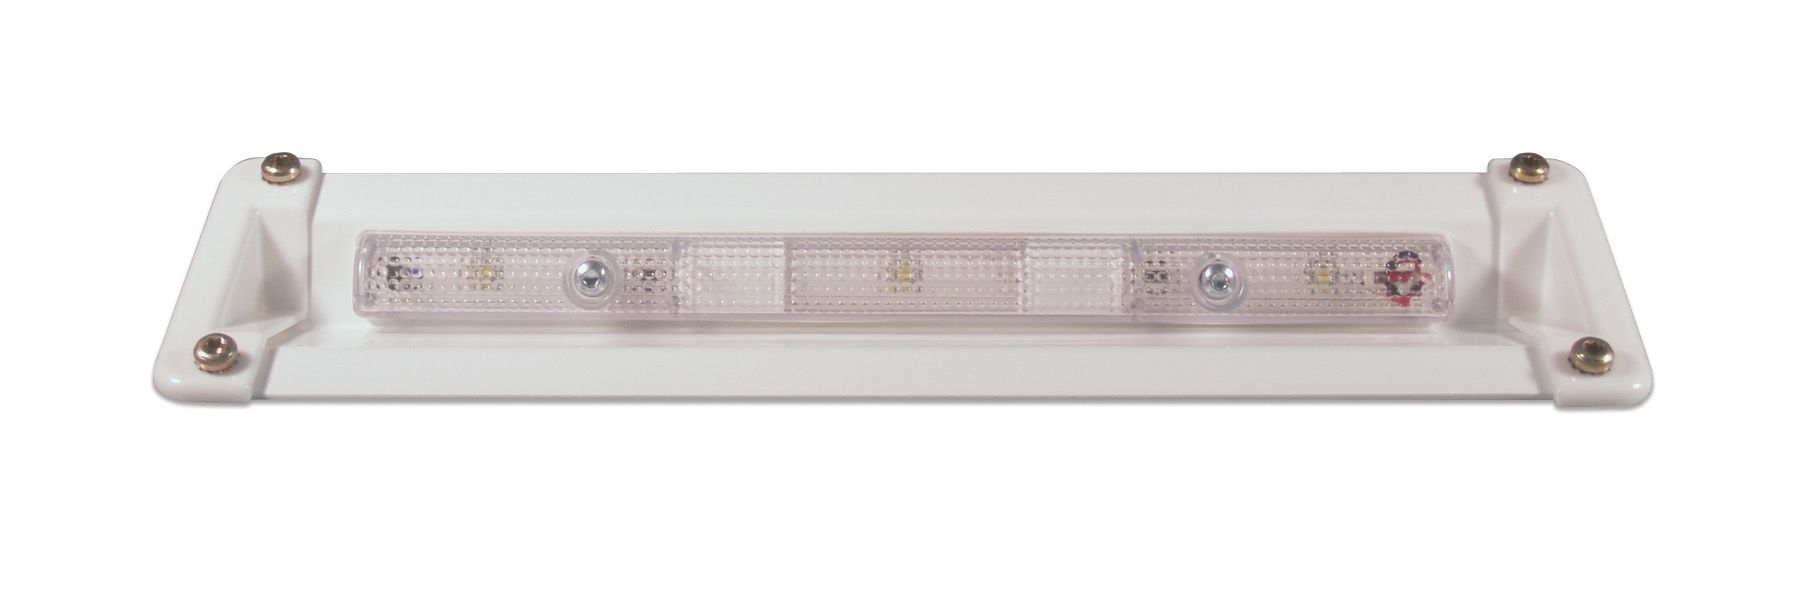 Flush Strip Light Product Image